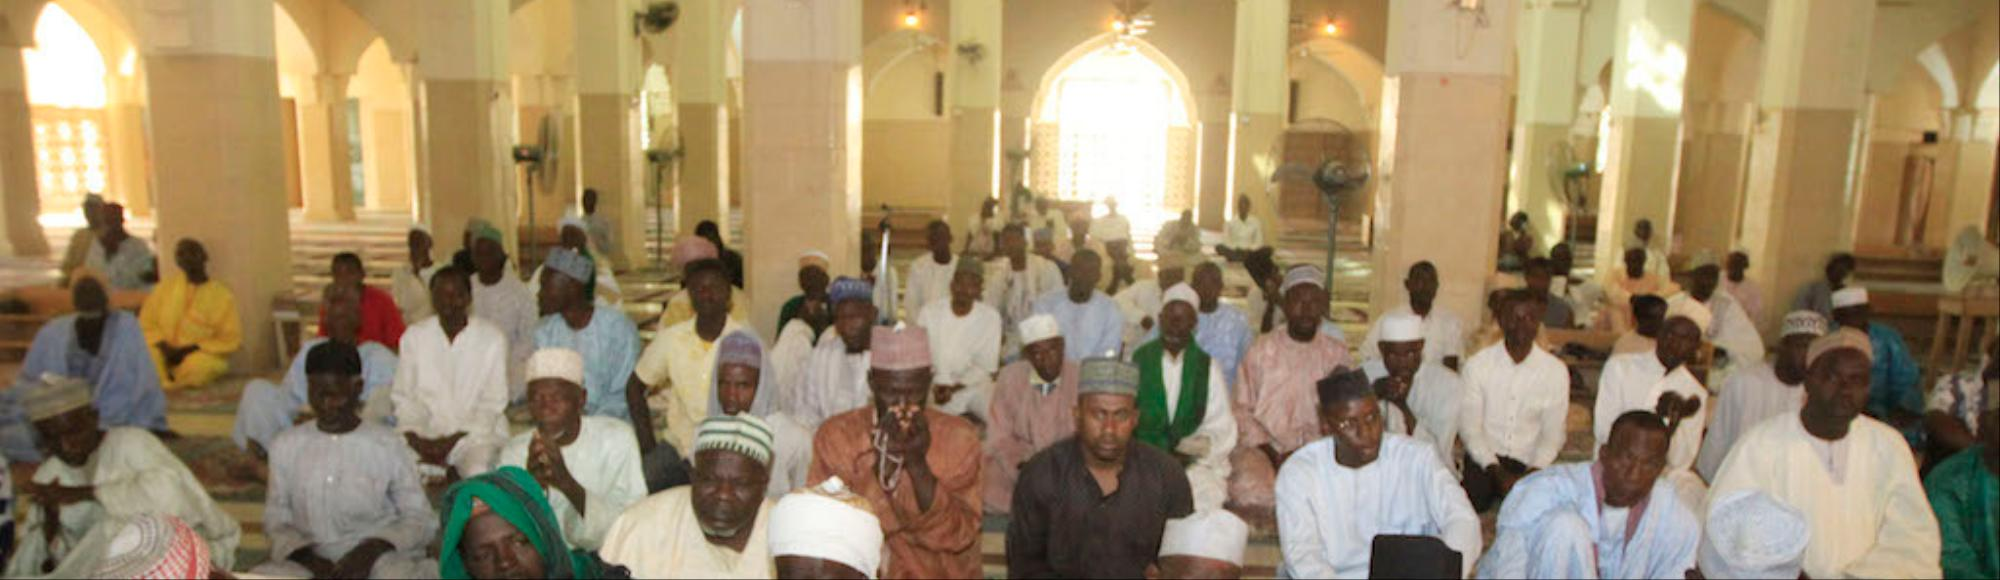 Bombings at a Mosque in Northern Nigeria Kill Dozens of Worshippers During Afternoon Prayers